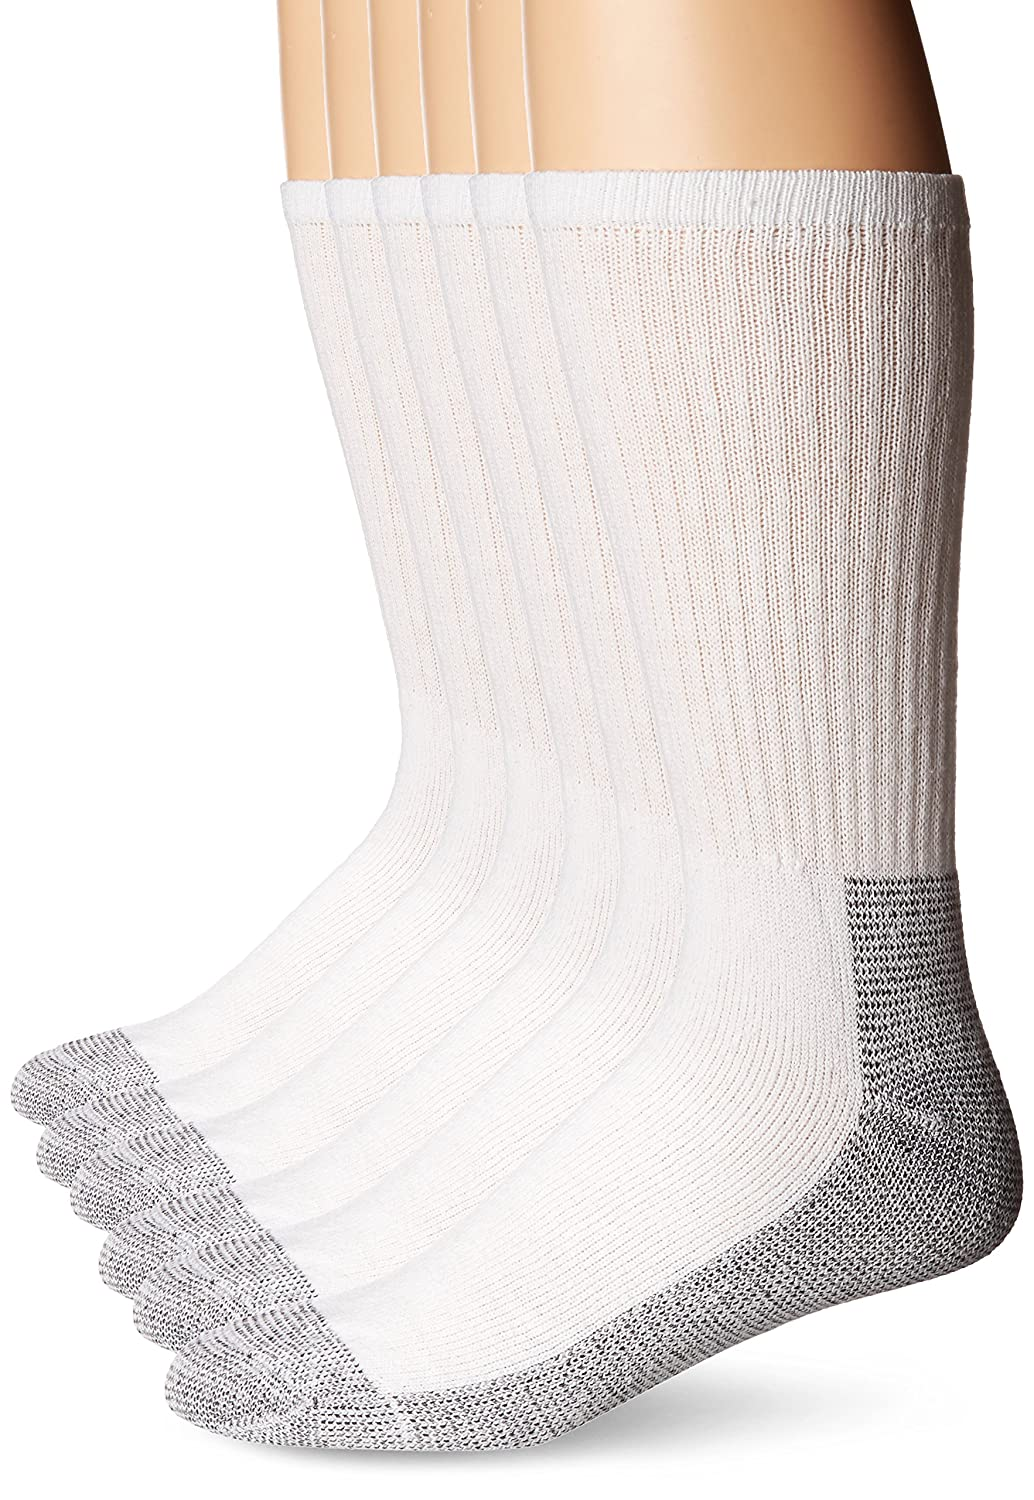 Fruit of the Loom 6 Pair Big and Tall Full Cushion Work Gear Crew Sock -white Shoe size 12-16 K8000W6US